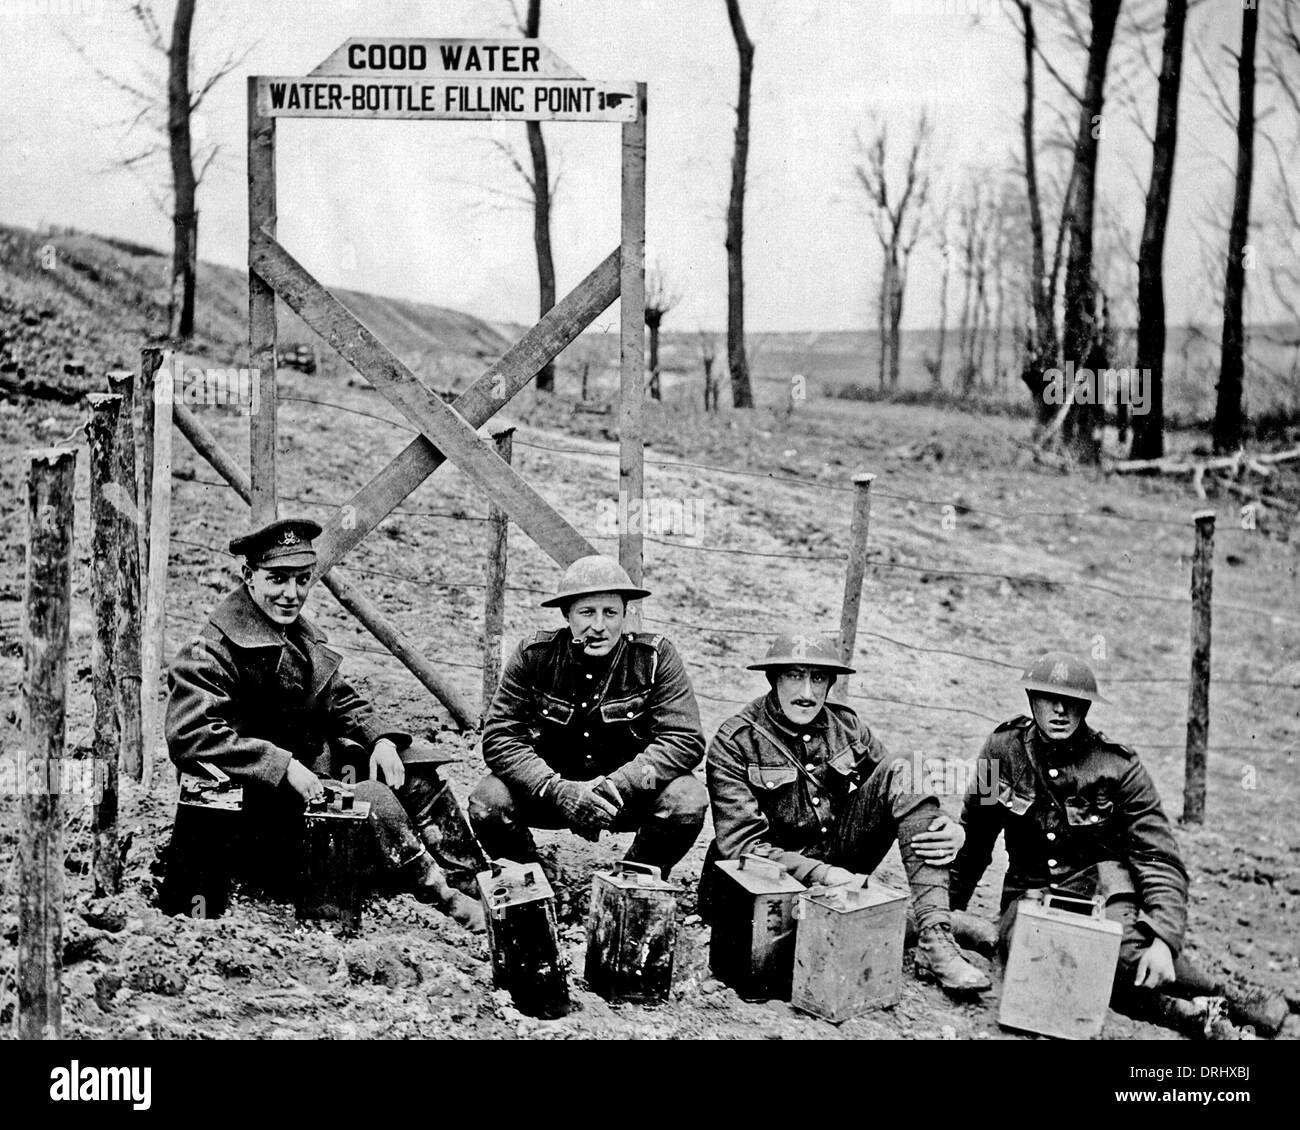 British soldiers with cans of water, Western Front, WW1 - Stock Image